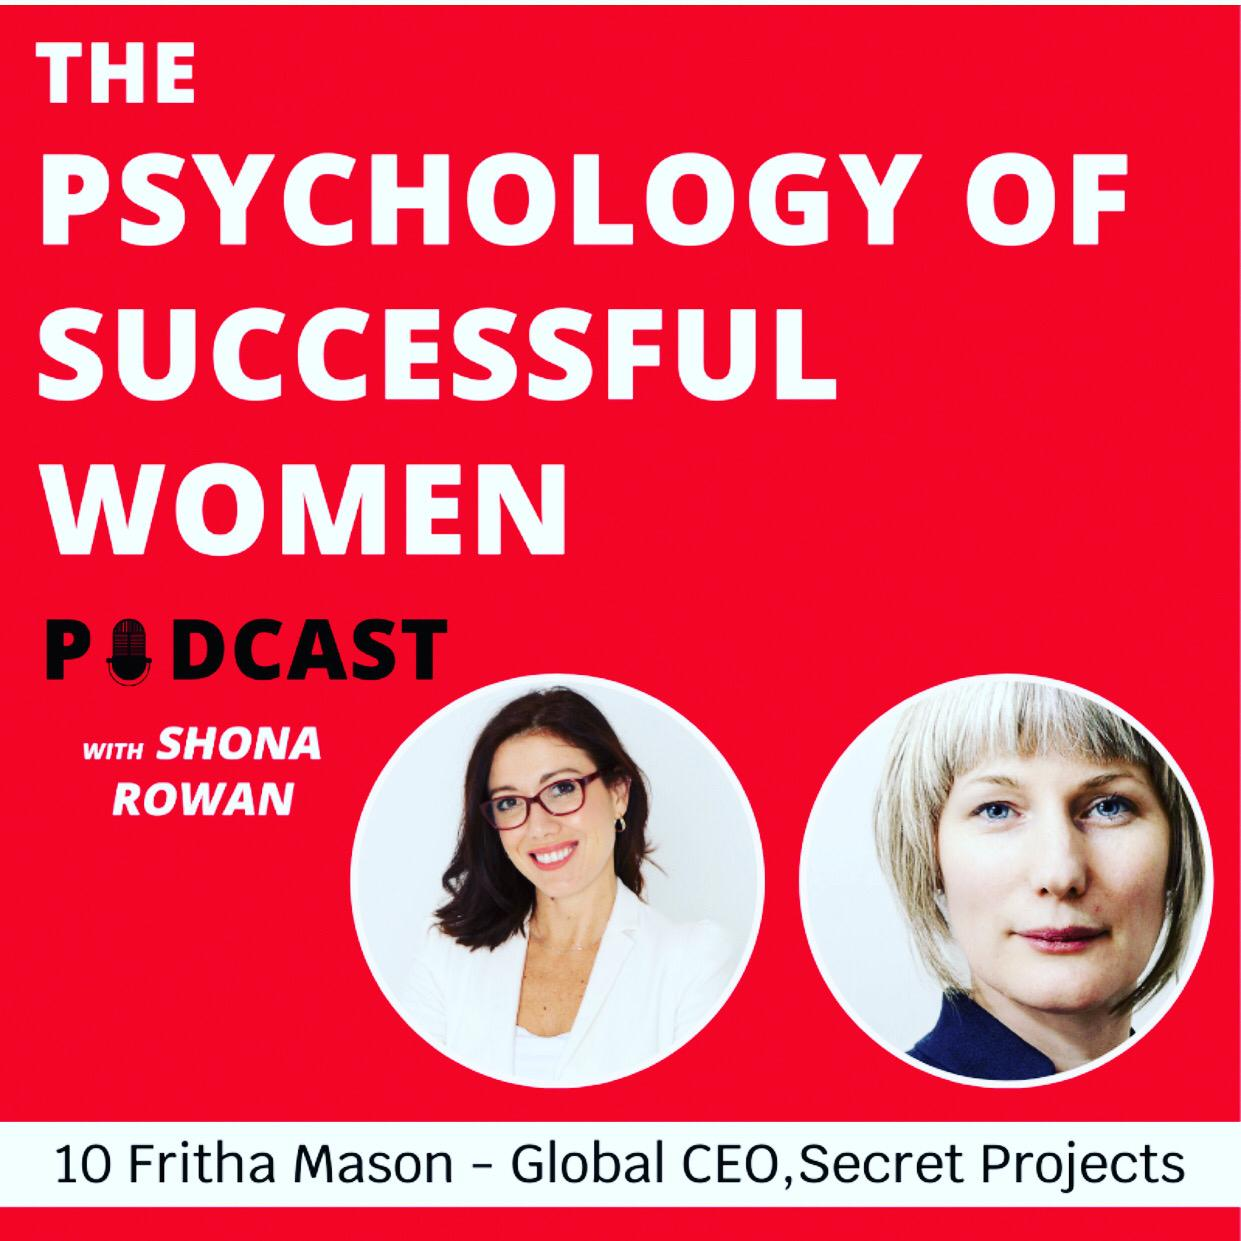 our-ceo-takes-part-in-the-psychology-of-successful-women-podcast-listen-and-be-inspired